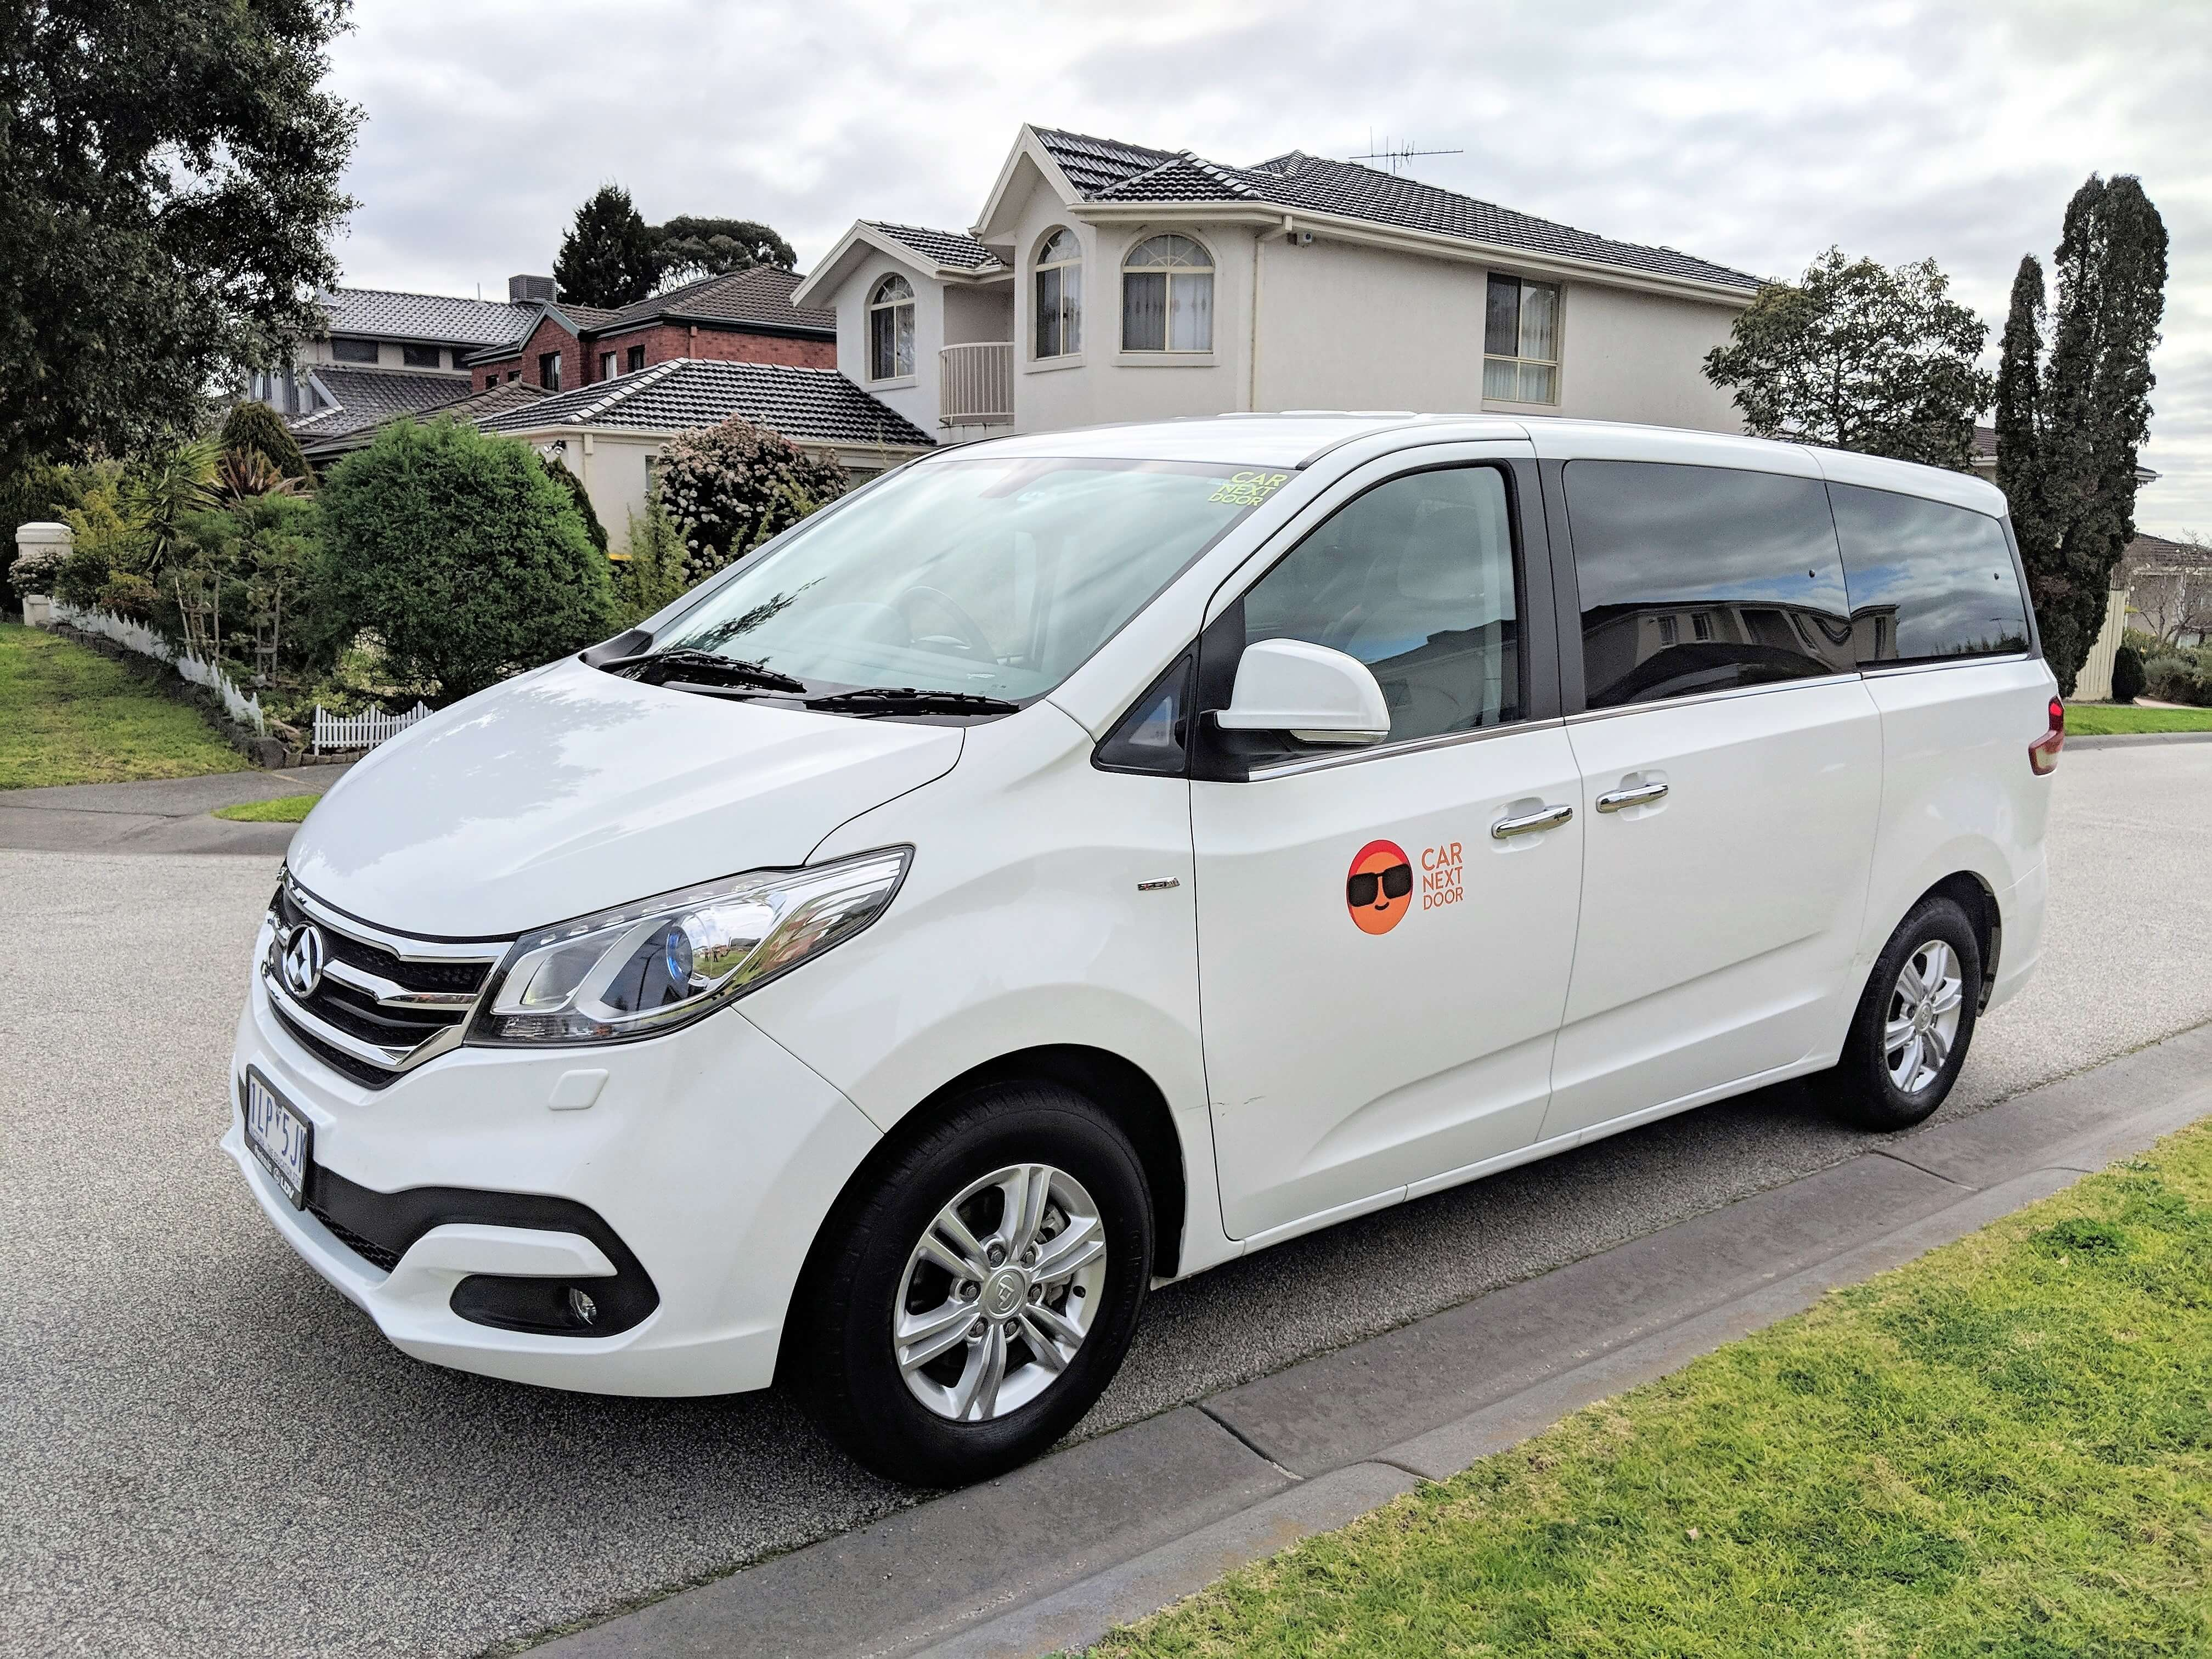 Picture of Paul's 2017 LDV G10